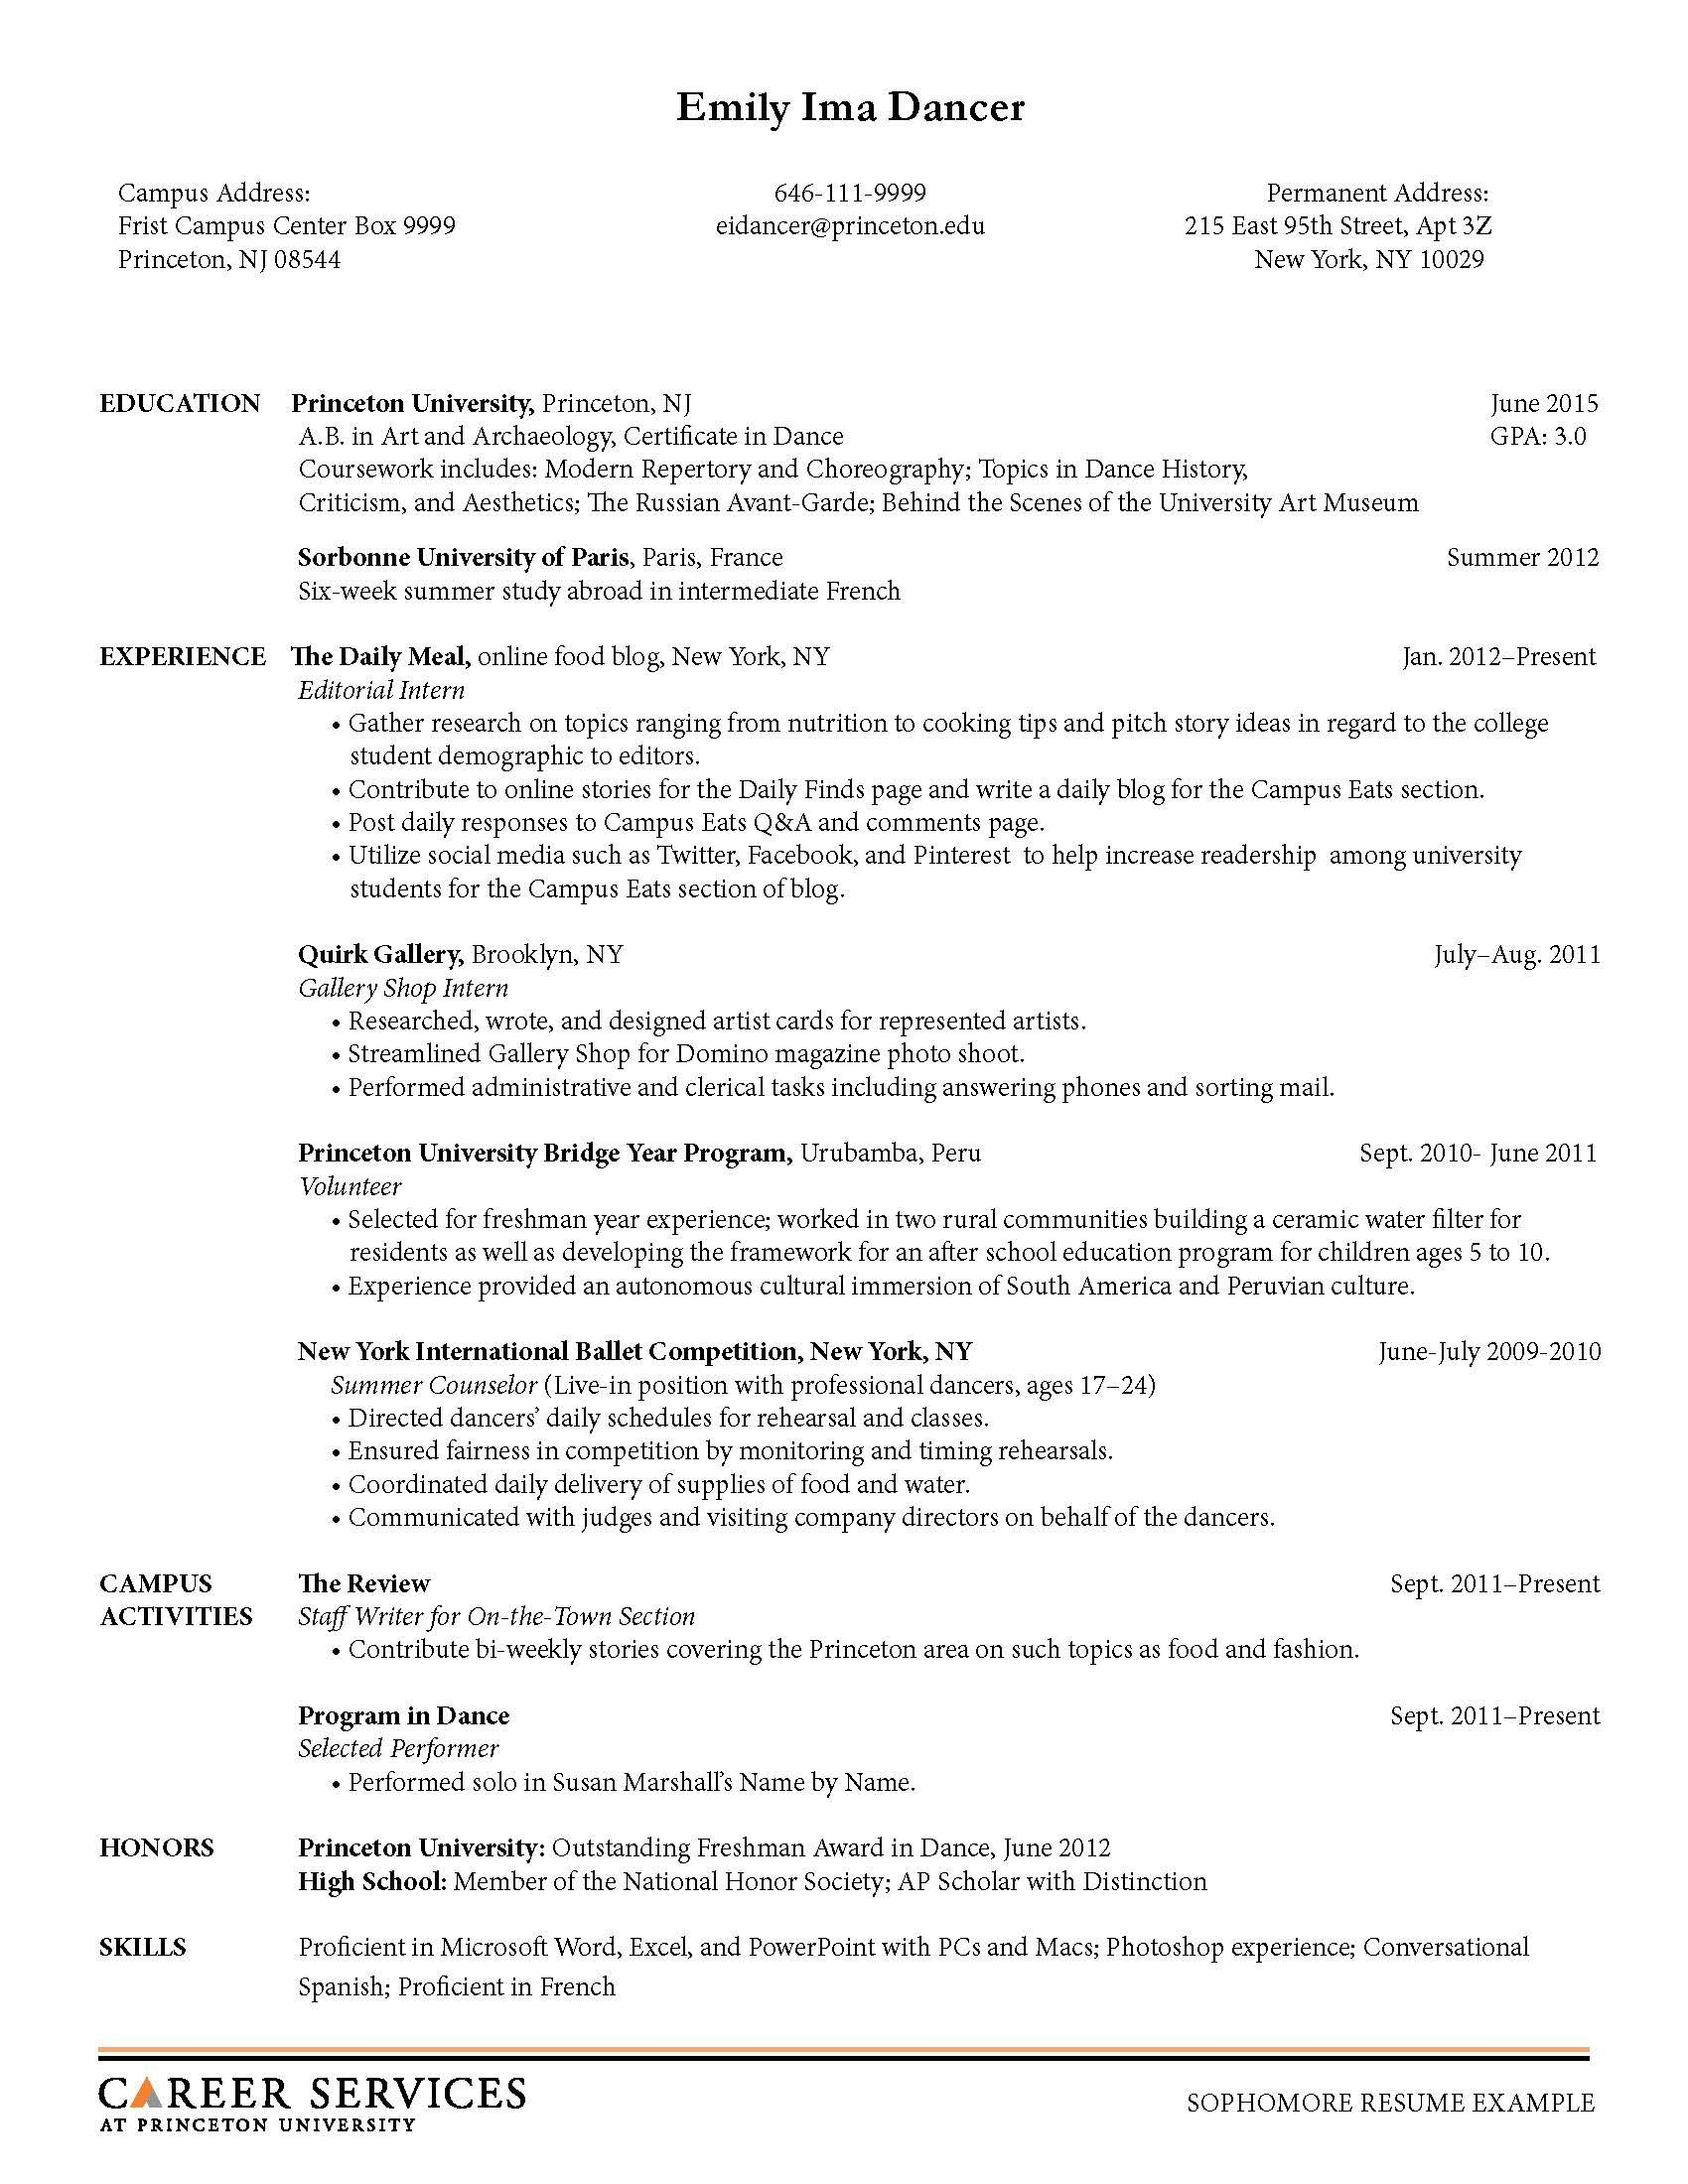 Opposenewapstandardsus  Scenic Sample Resume Resume And Career On Pinterest With Fetching Personal Qualities For Resume Besides Letter Of Recommendation Resume Furthermore Pics Of Resumes With Delightful Solutions Architect Resume Also Examples Of A Professional Resume In Addition Quality Control Resume Sample And Music Industry Resume As Well As Resume For Healthcare Additionally Resumes For Career Changers From Pinterestcom With Opposenewapstandardsus  Fetching Sample Resume Resume And Career On Pinterest With Delightful Personal Qualities For Resume Besides Letter Of Recommendation Resume Furthermore Pics Of Resumes And Scenic Solutions Architect Resume Also Examples Of A Professional Resume In Addition Quality Control Resume Sample From Pinterestcom